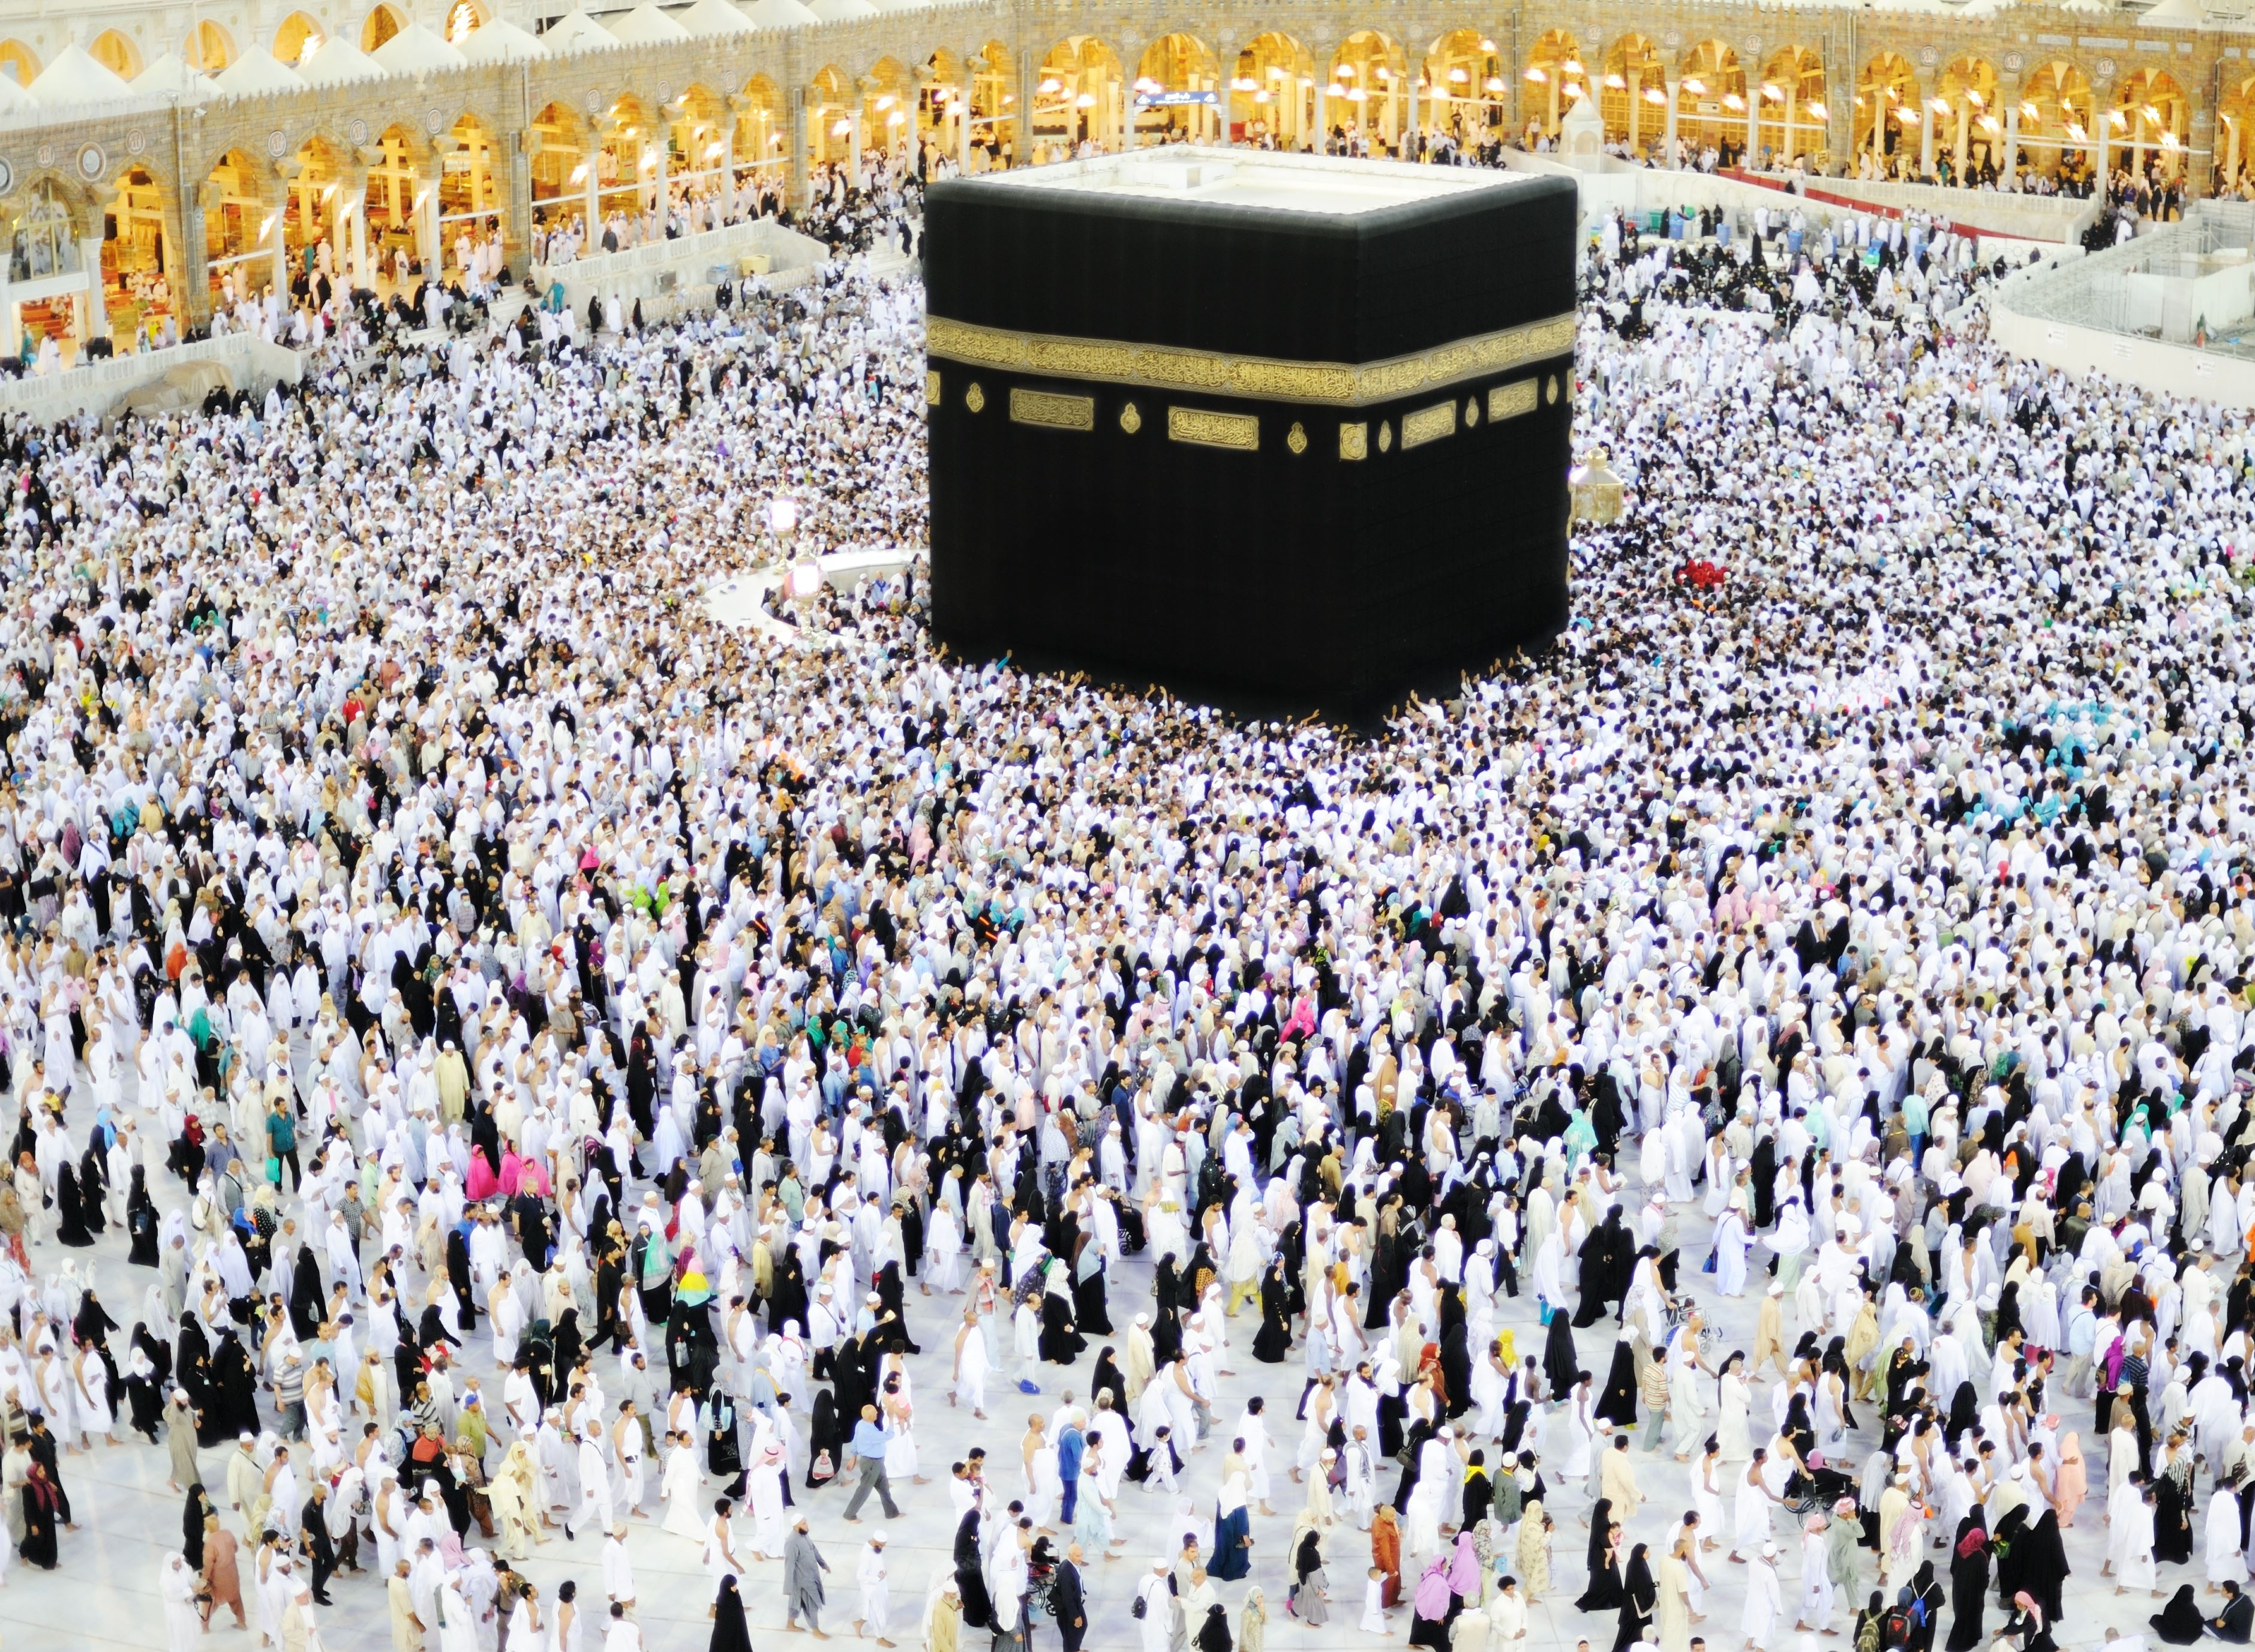 Does anyone know what the Hajj is